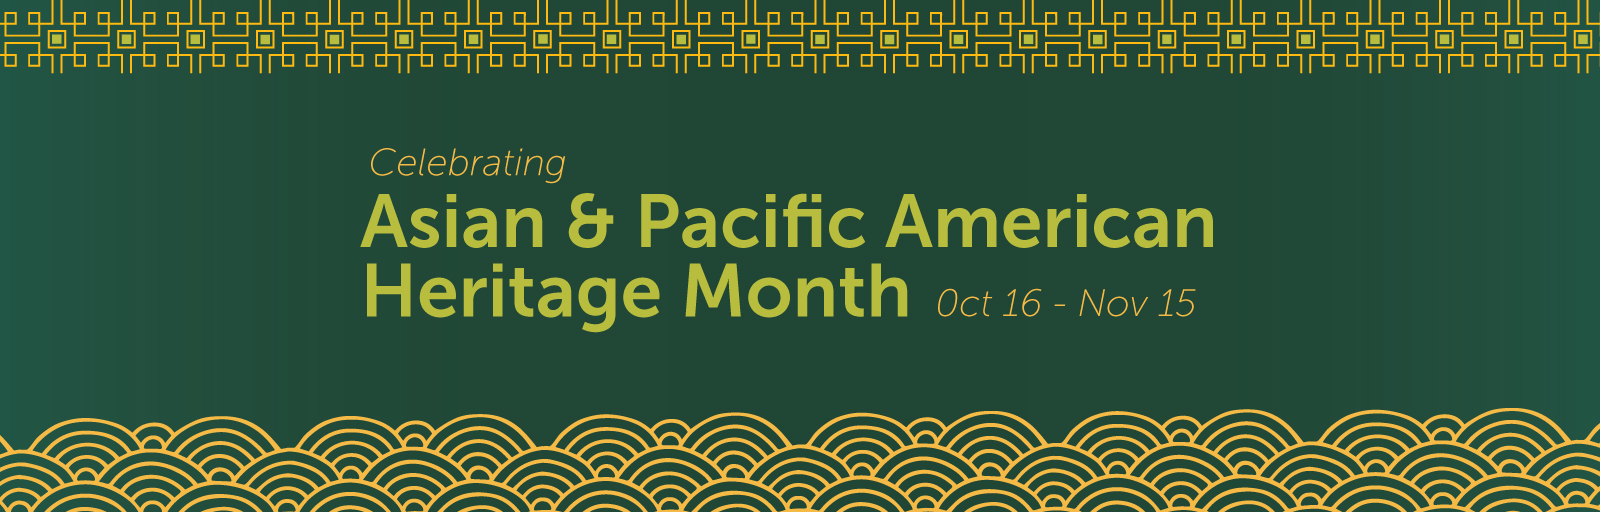 F19_AsianPacificAmerican_Heritage_Month